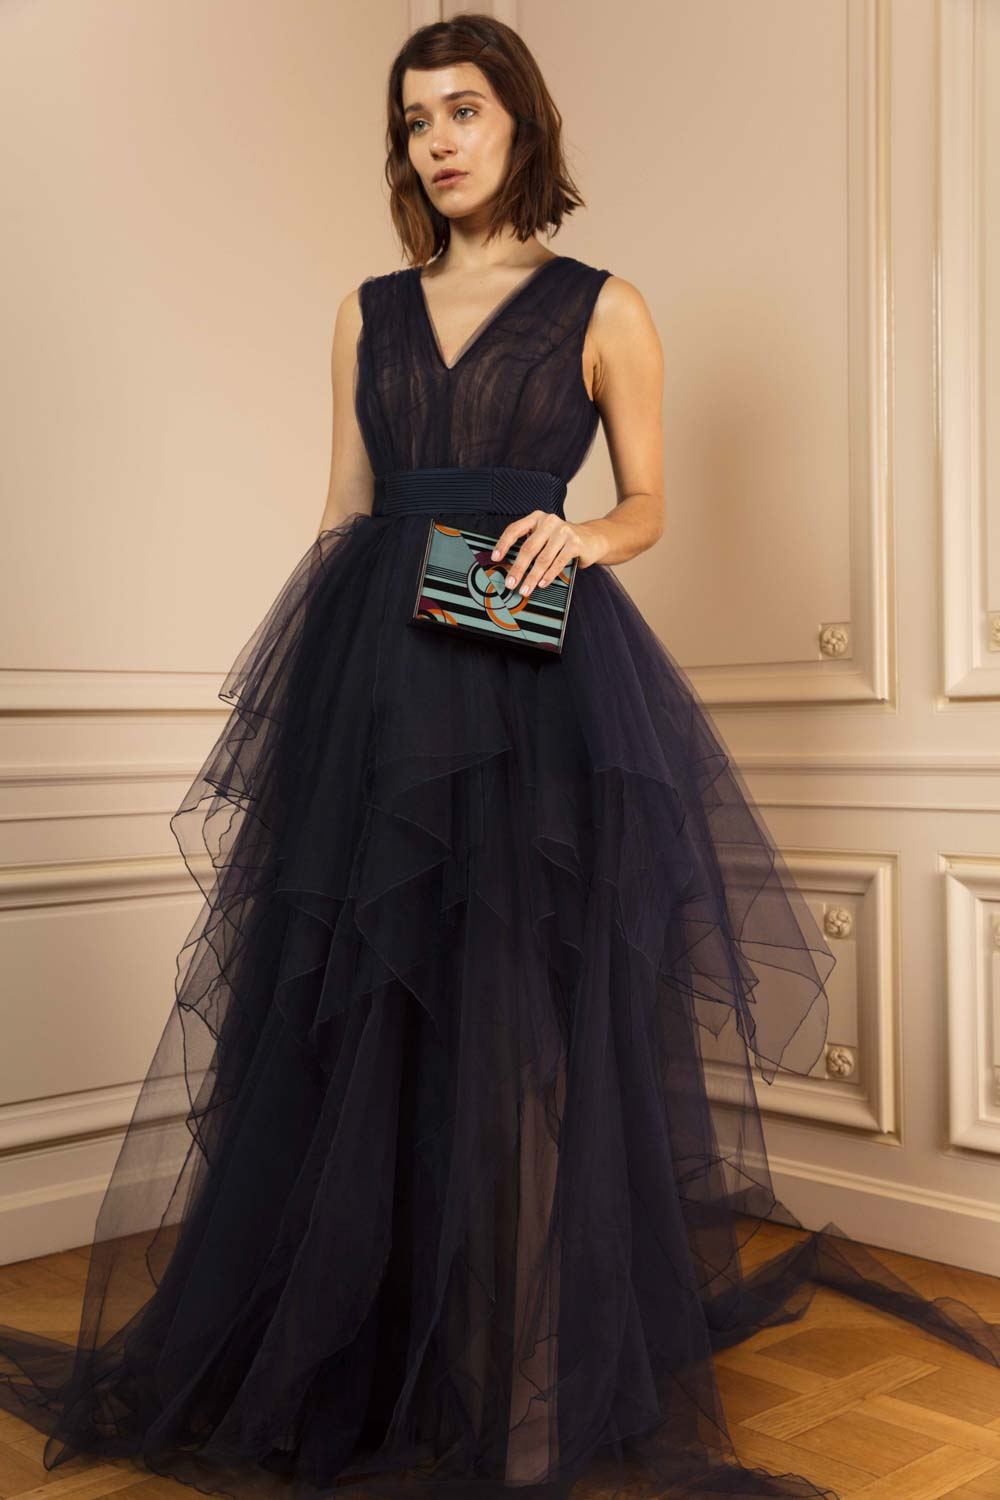 Multi-tiered gown in midnight blue tulle